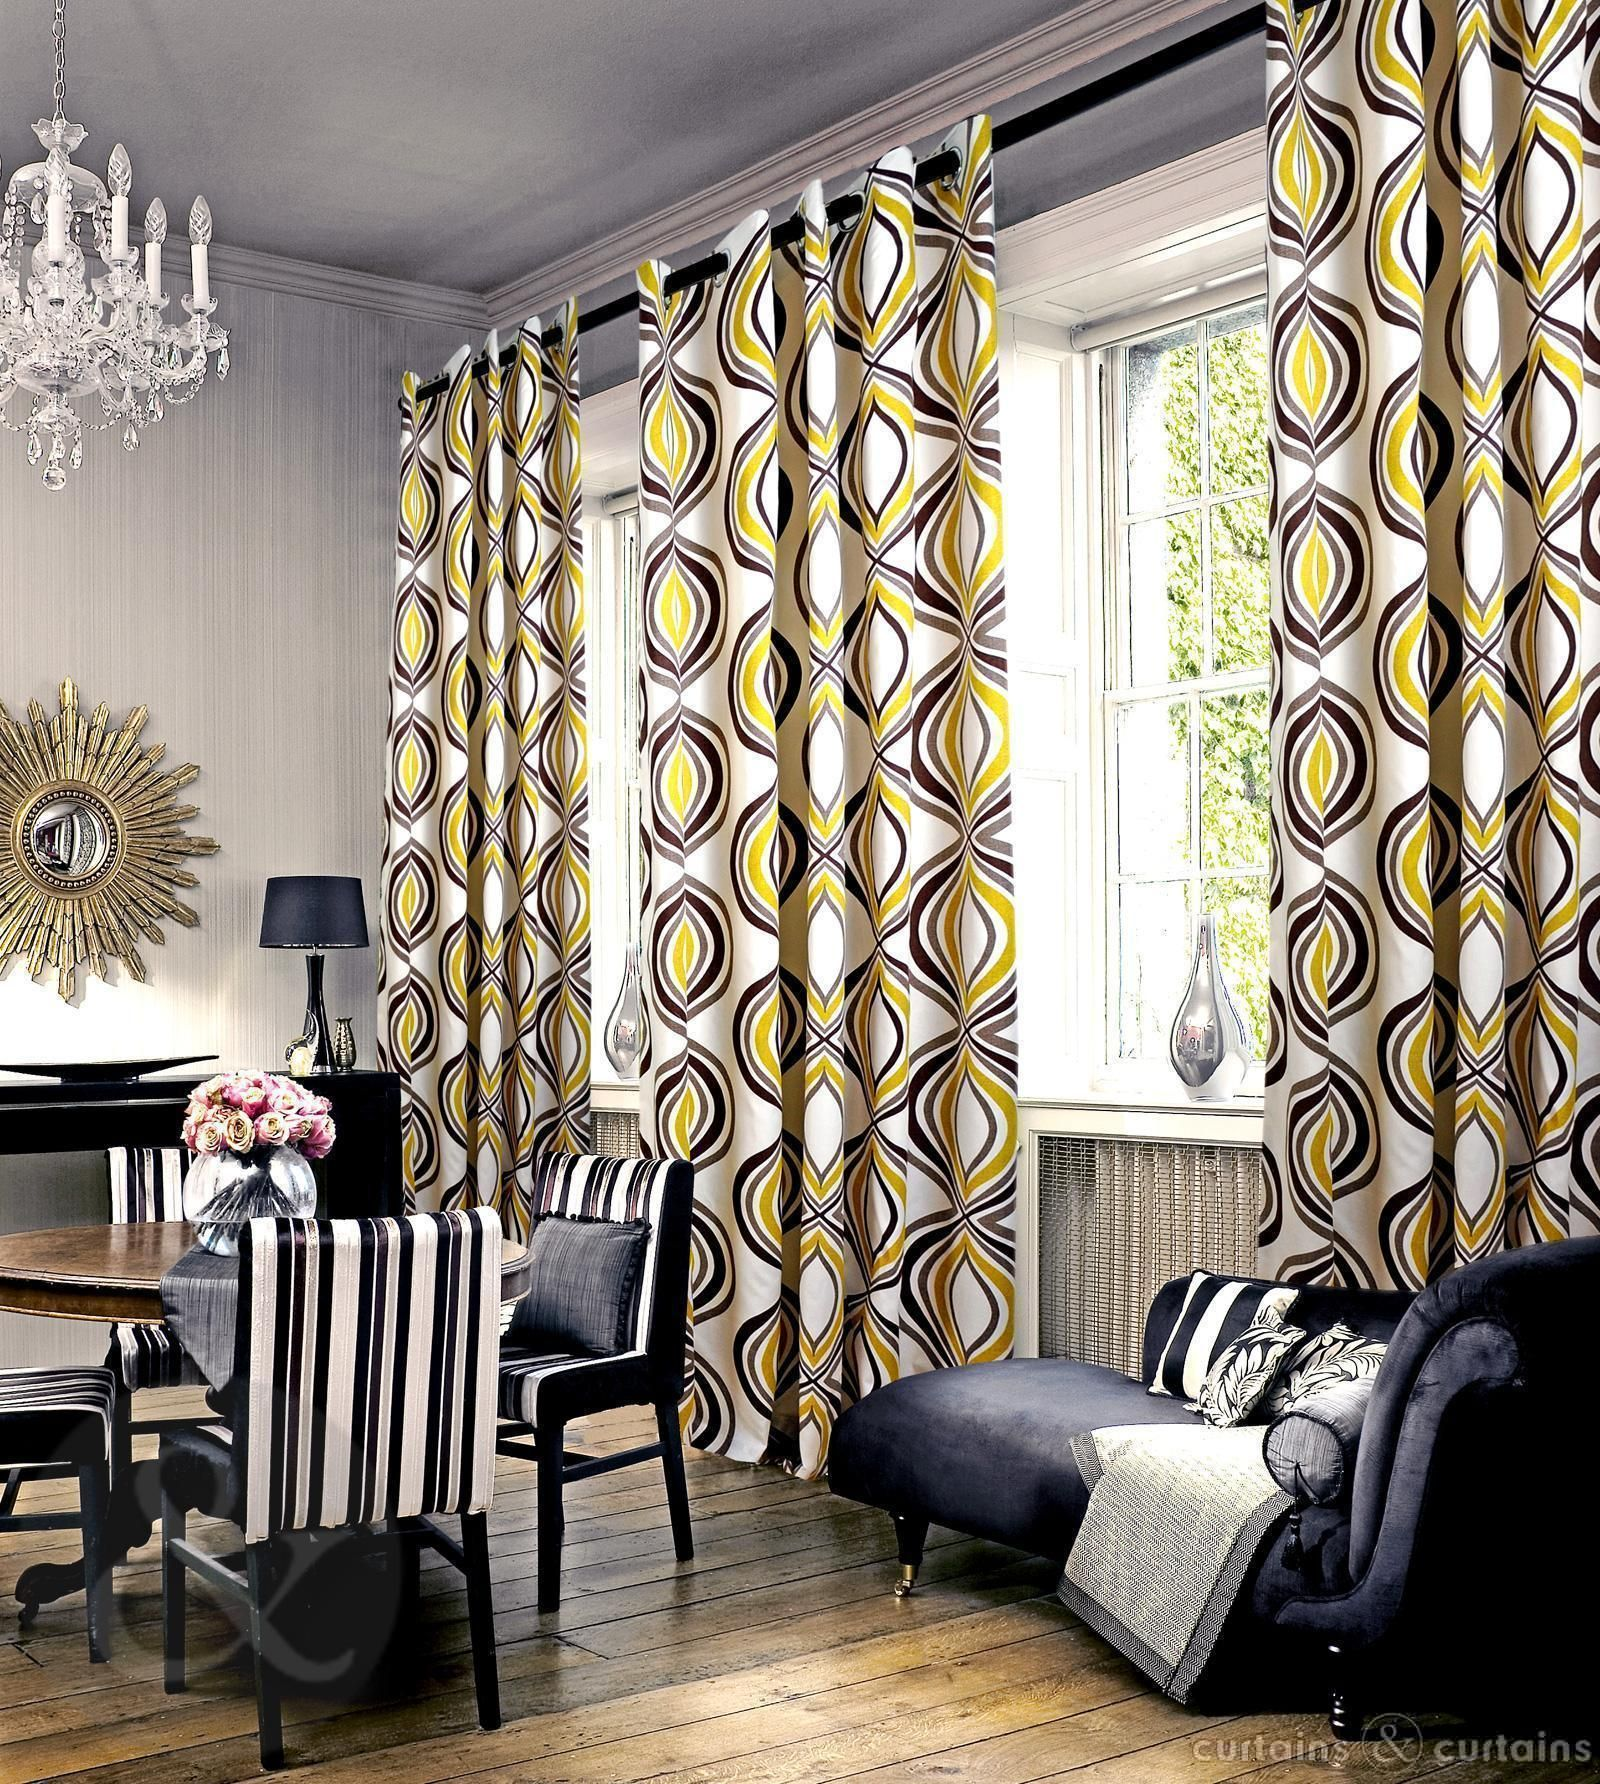 Kitchen Curtains For Yellow Walls Imperial Mustard Yellow Eyelet Luxury Lined Curtain